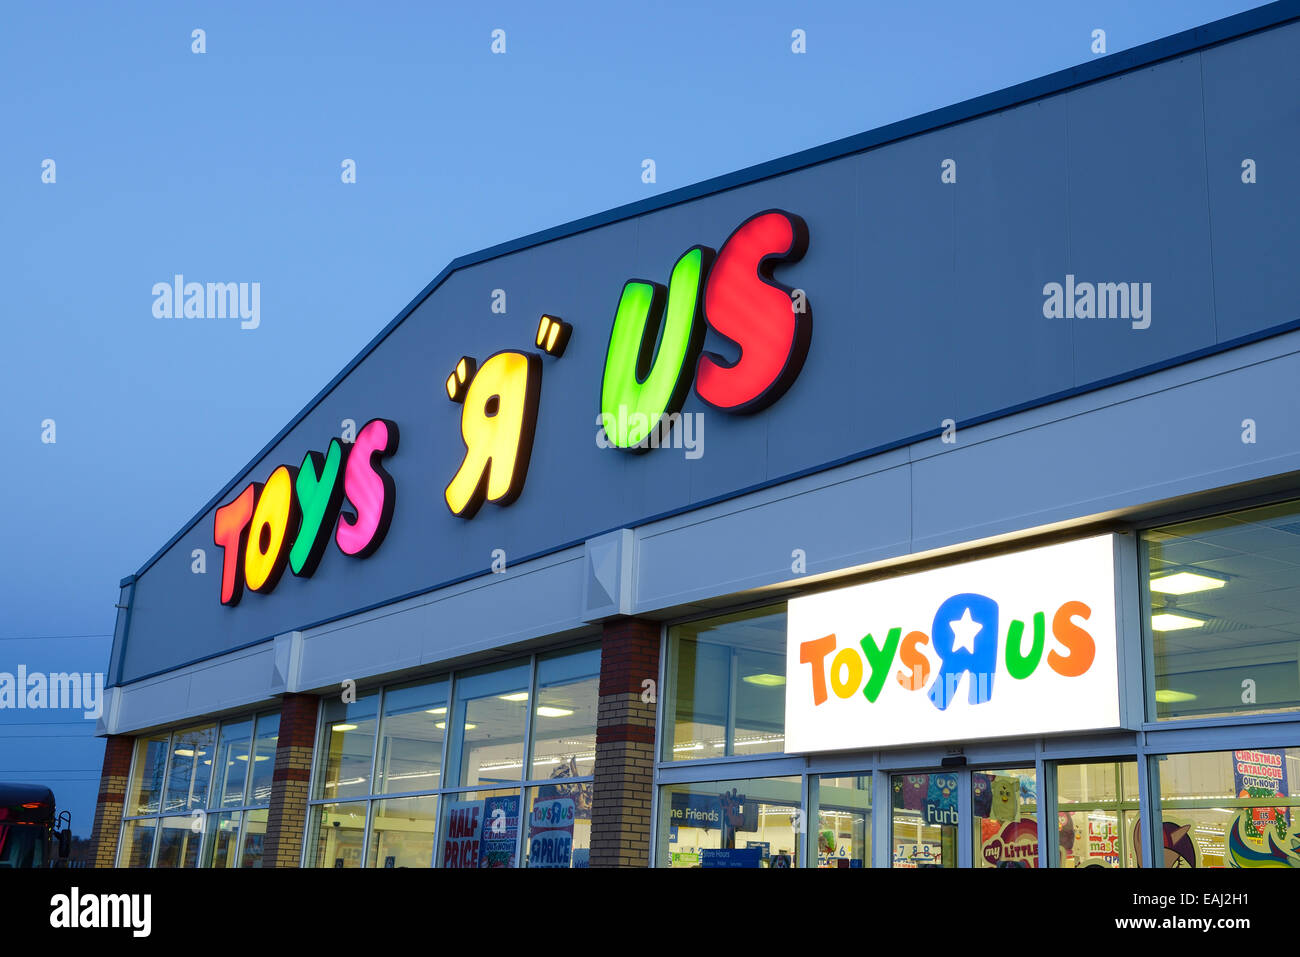 Toys R Us Shop Front At Night Stock Photo 75385213 Alamy